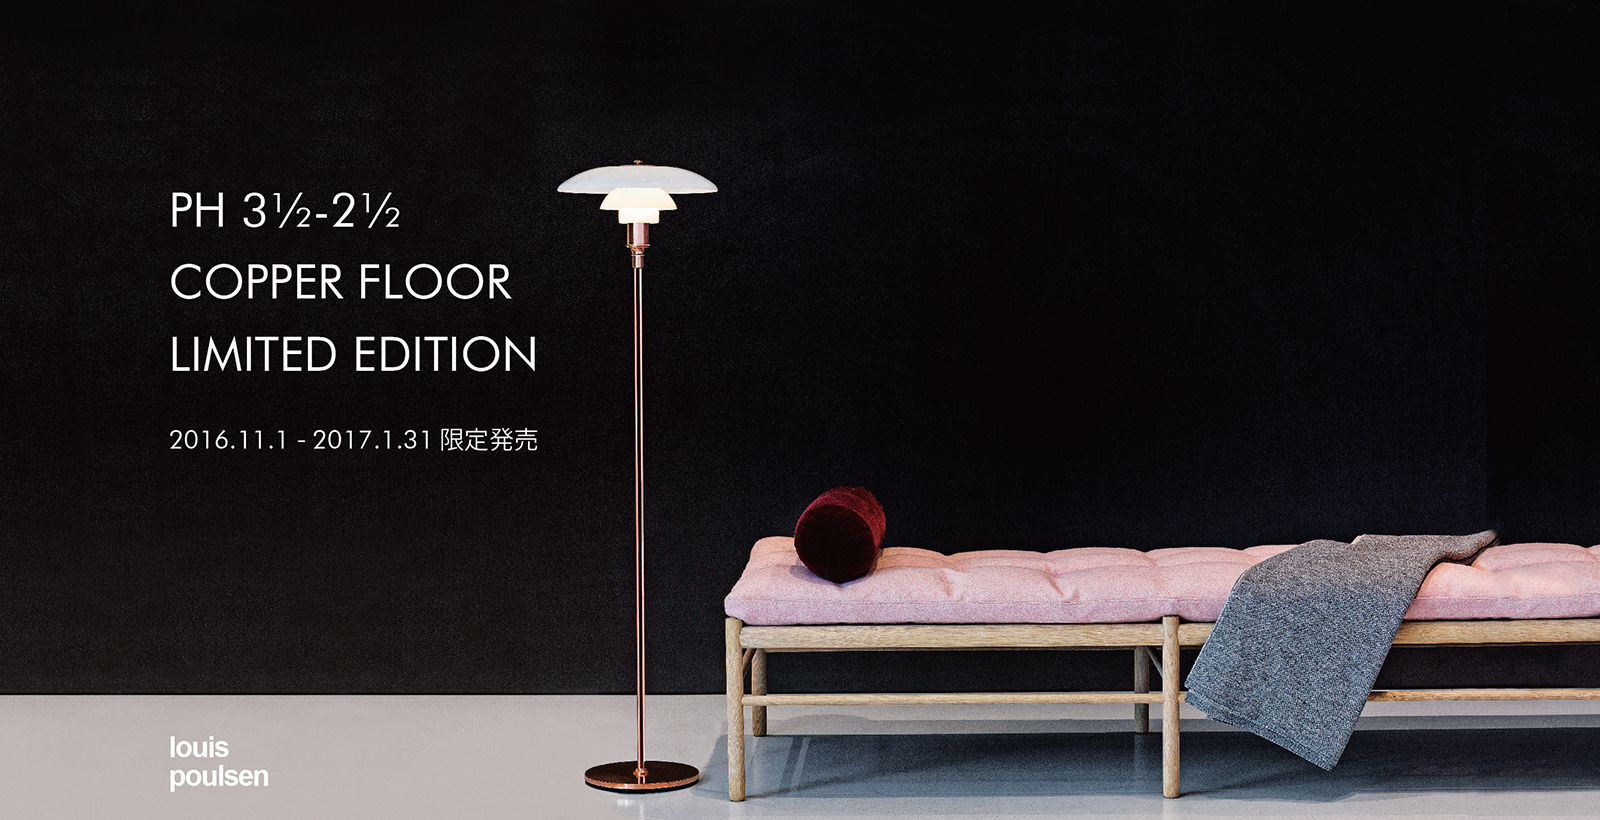 PH 3½-2½  COPPER FLOOR LIMITED EDITION